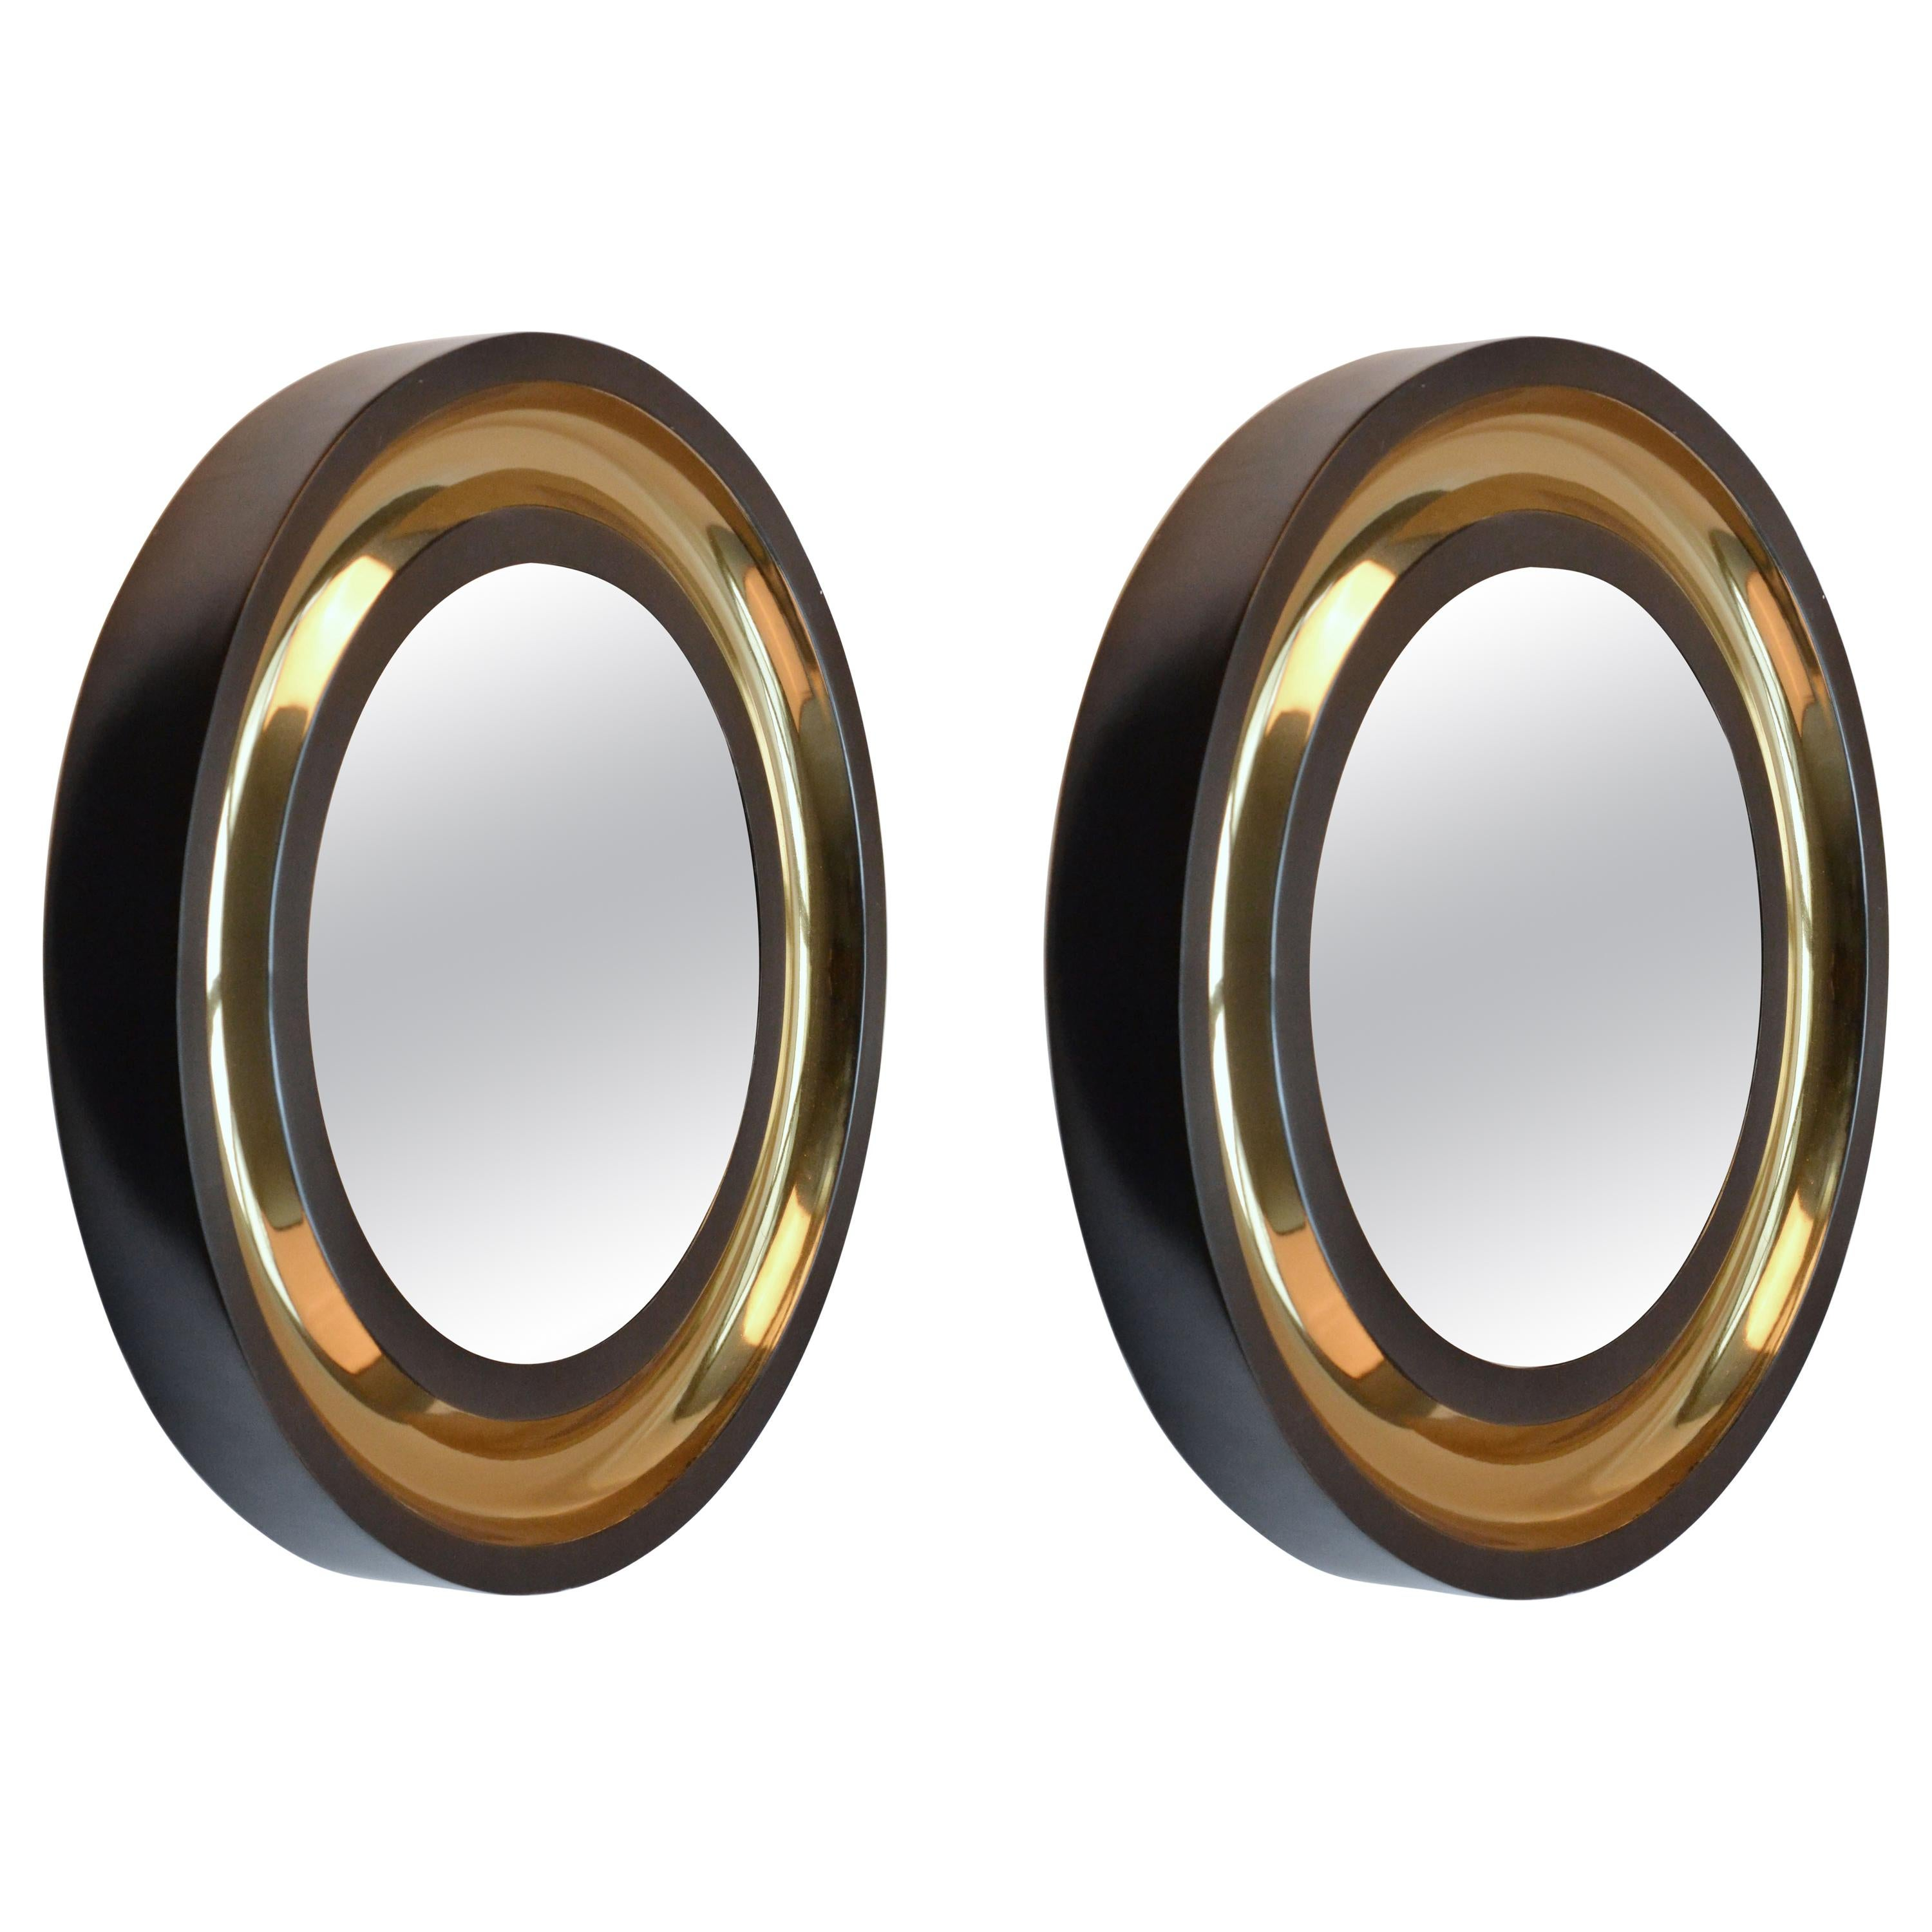 Pair of Round Wall Mirrors Patinated with Bronze Finish